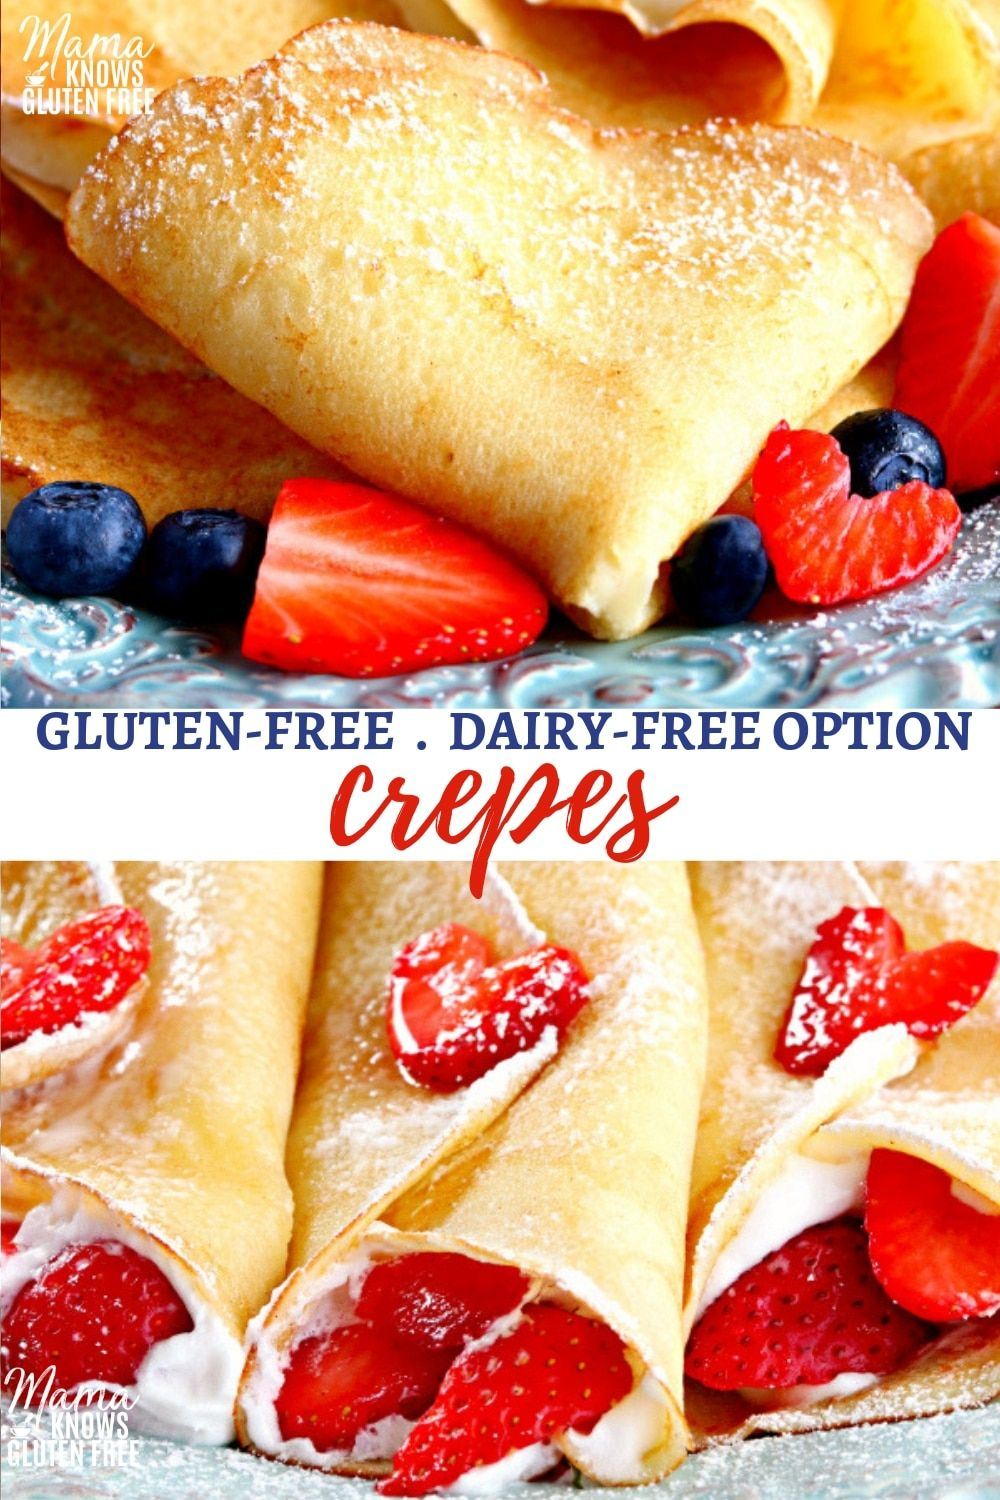 Learn how to make crepes at home with this easy gluten-free crepe recipe! Crepes can be sweet or savory. Perfect for a special breakfast or dessert. #crepes #glutenfreerecipes #glutenfreebreakfasts